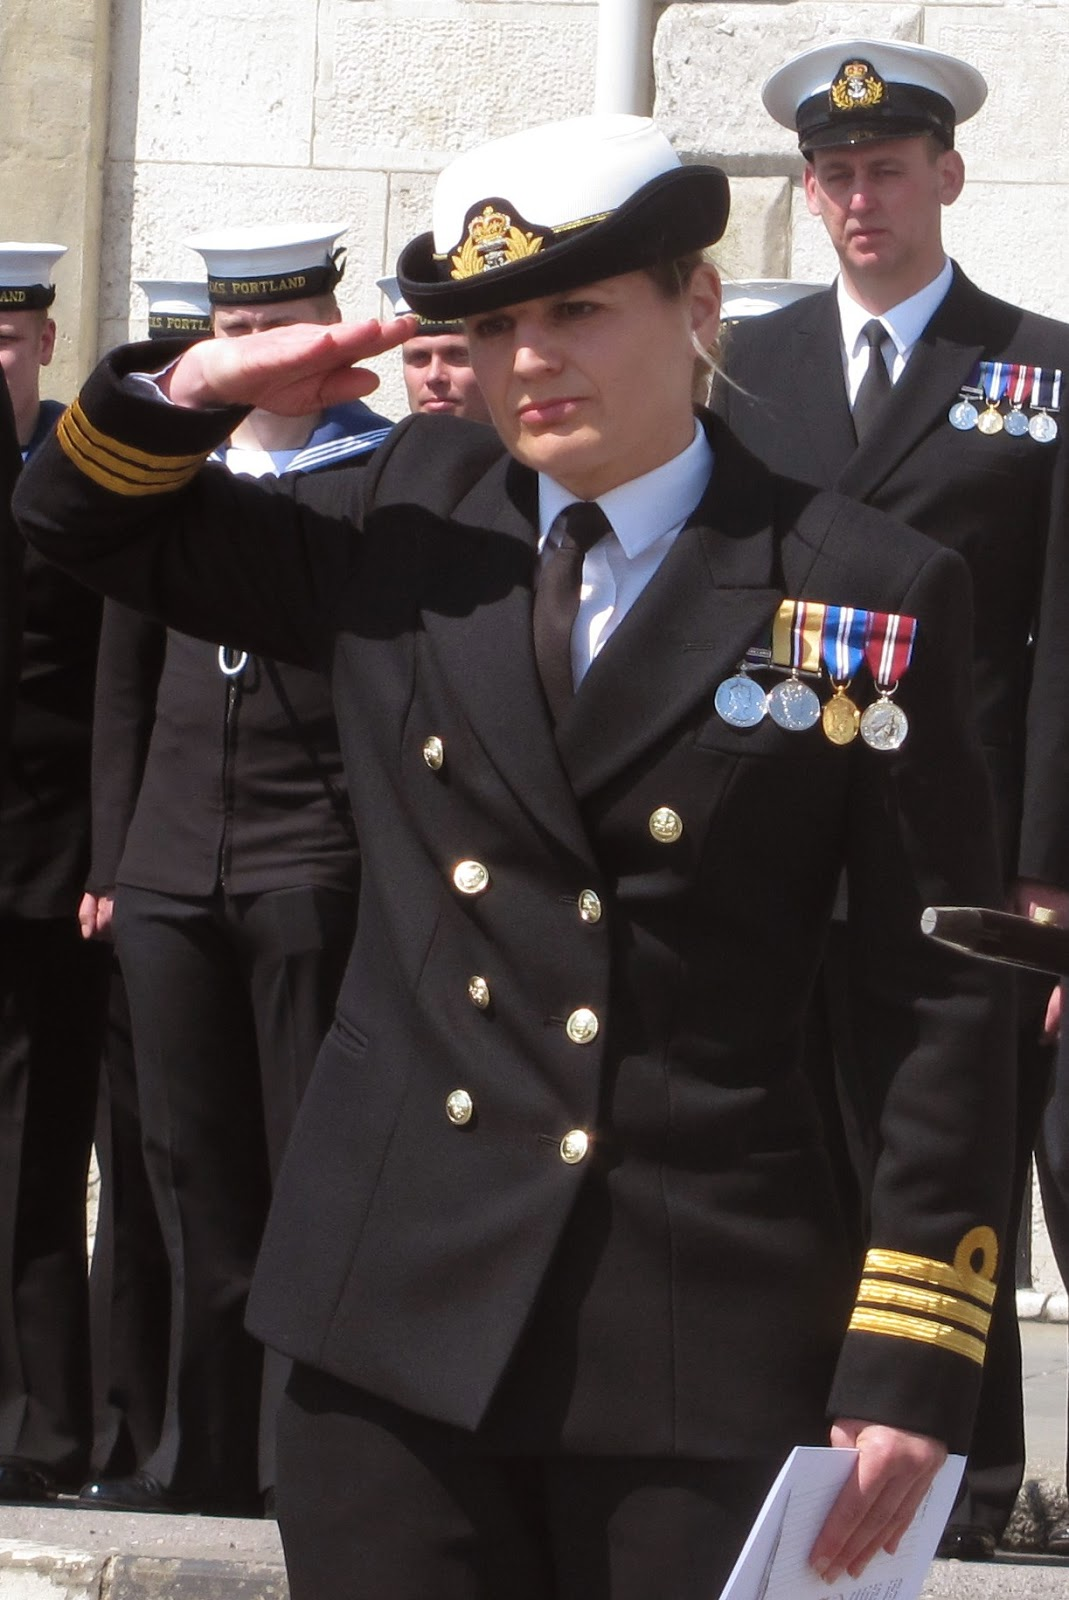 Commander of HMS Portland Sarah West Sent Home from Deployment